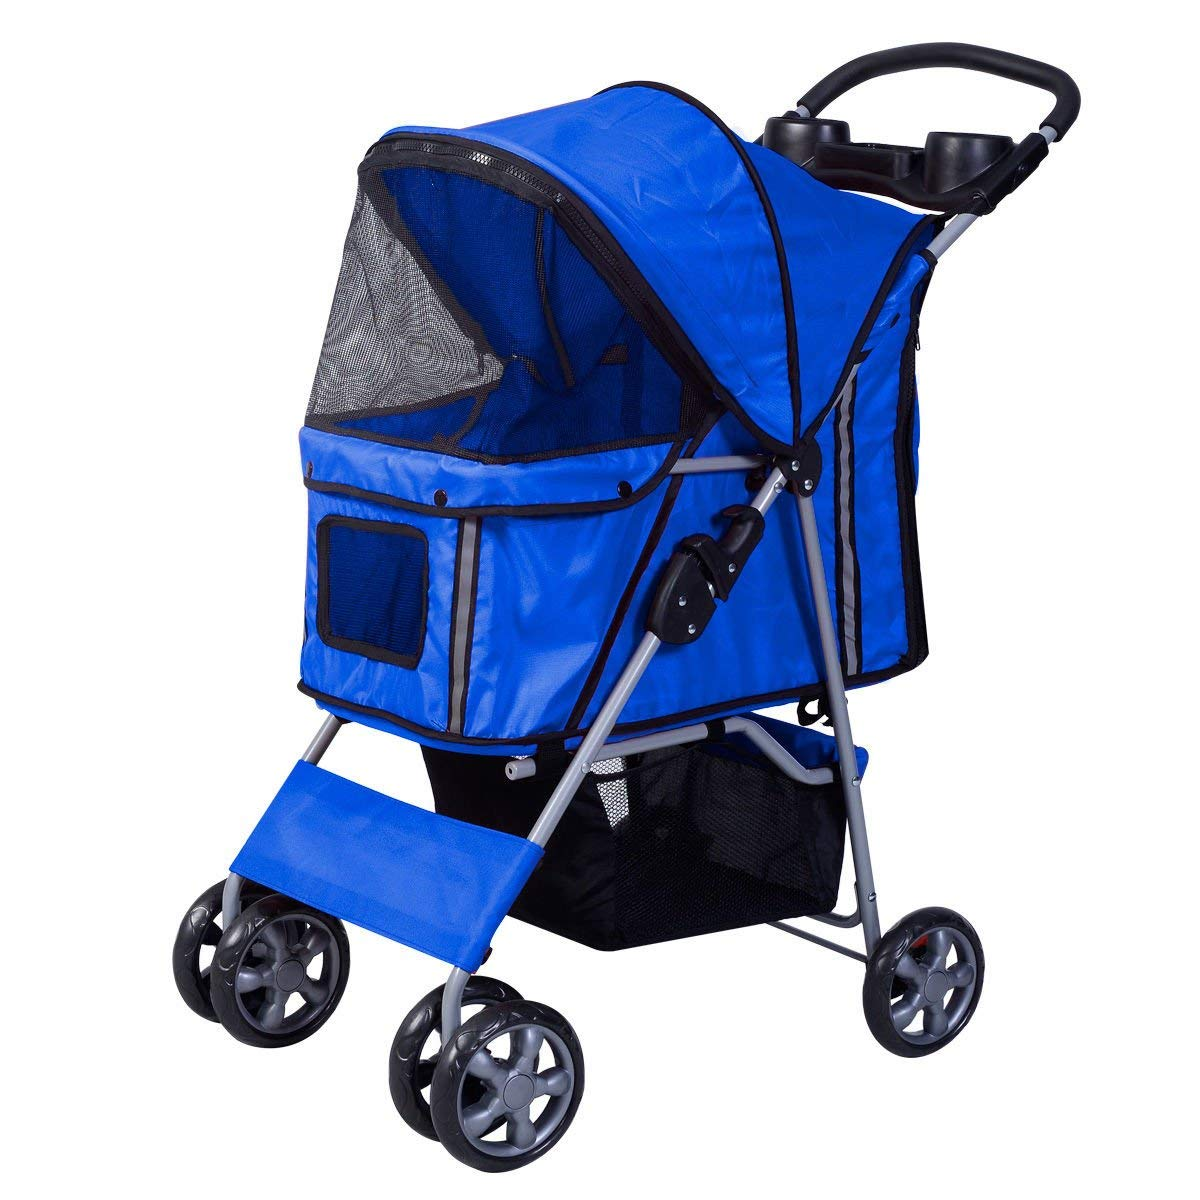 GWM Backpacks Pet Stroller Dog Pushchair Light Weight Stainless Frame pet Travel Carrier Big Wheel with Safety Breaks